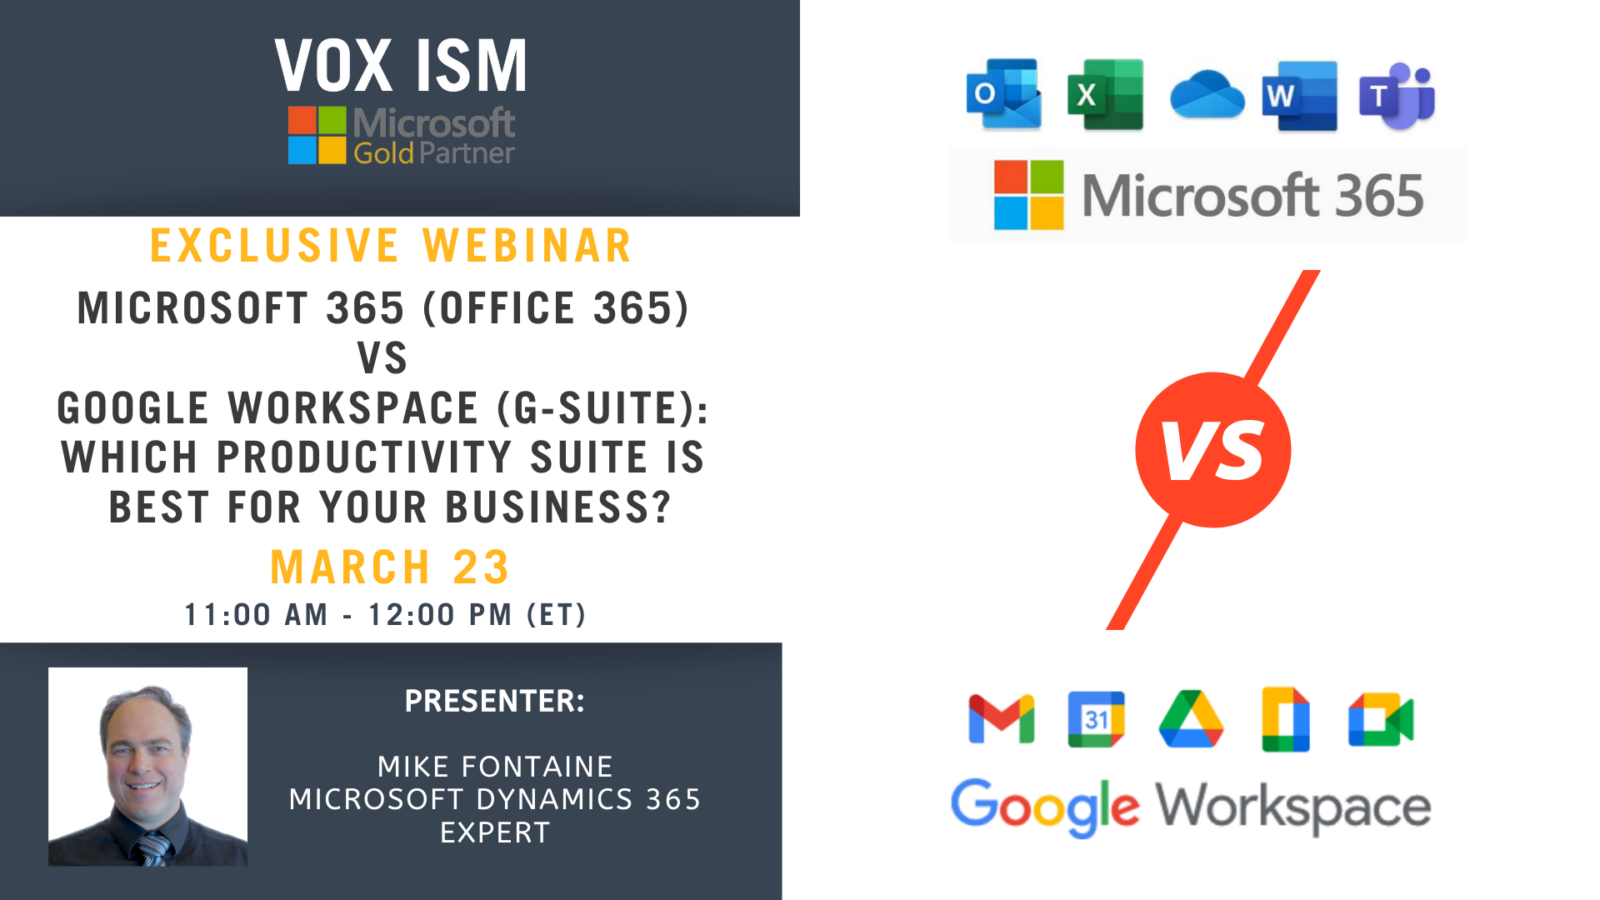 Microsoft 365 (formerly Office 365) vs Google Workspace (formerly G-suite): Which productivity suite is best for your business? - March 23 - Webinar